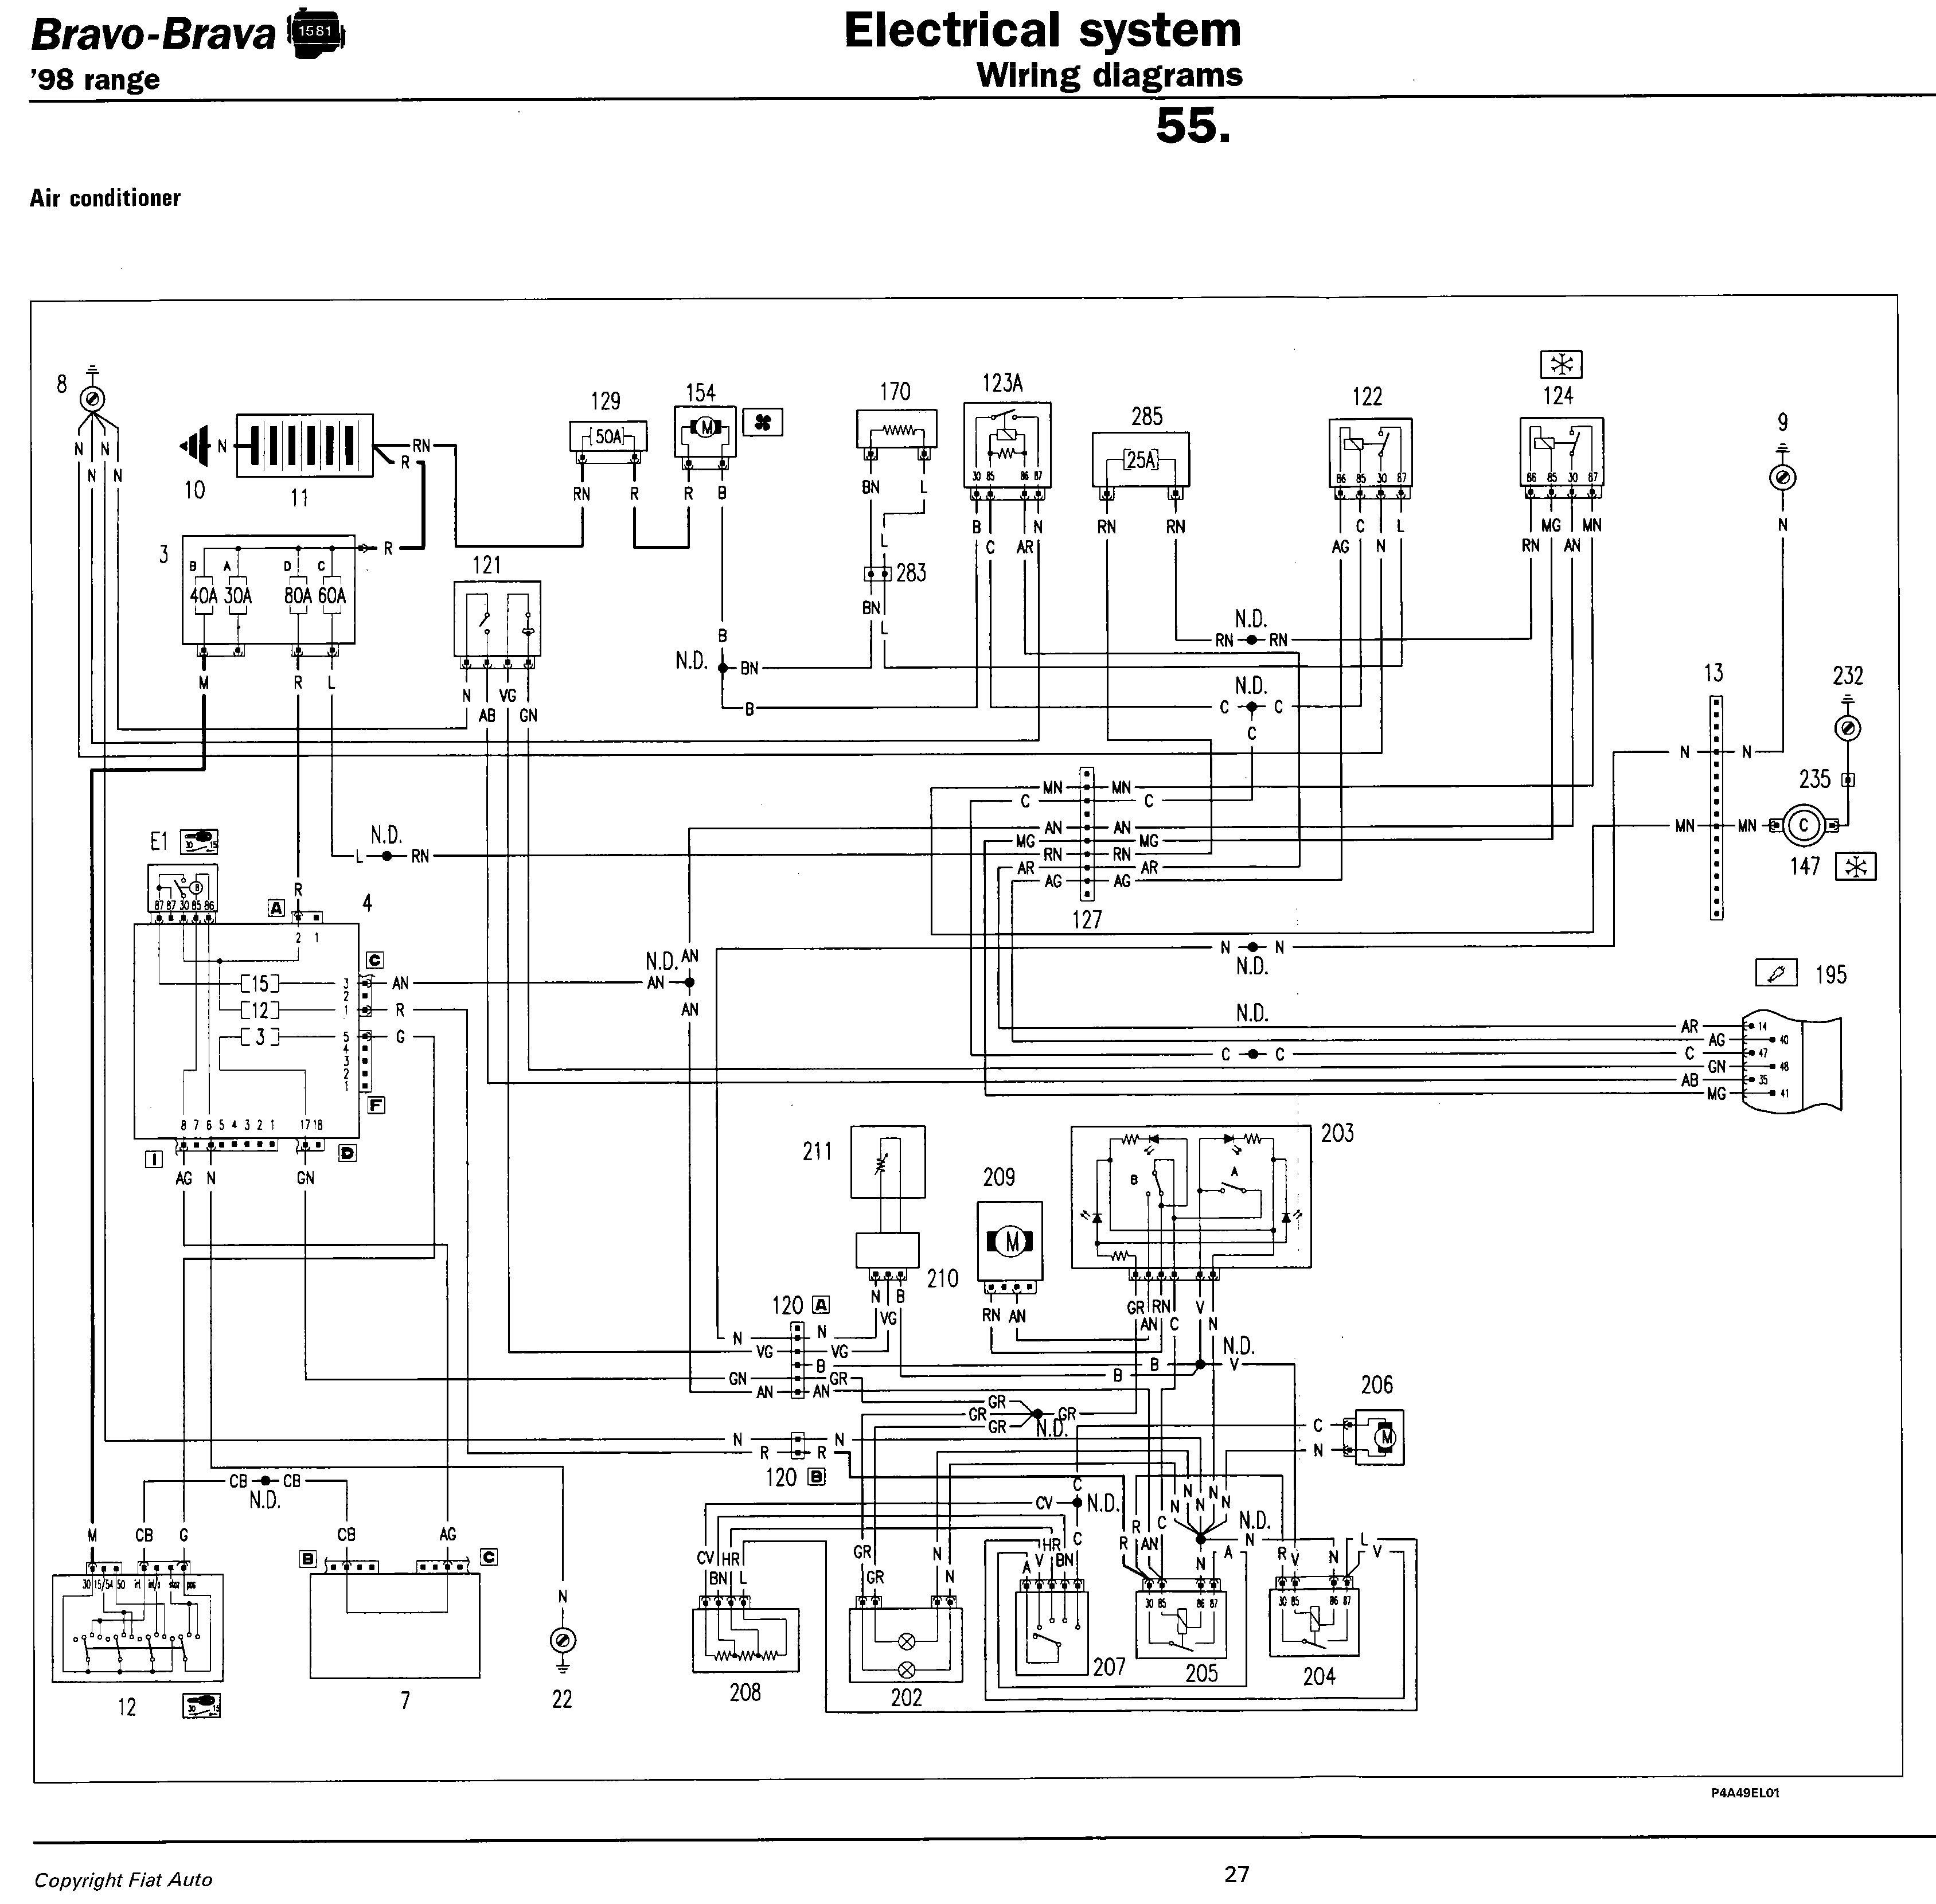 fiat stilo wiring diagram potato cell punto repository next gr